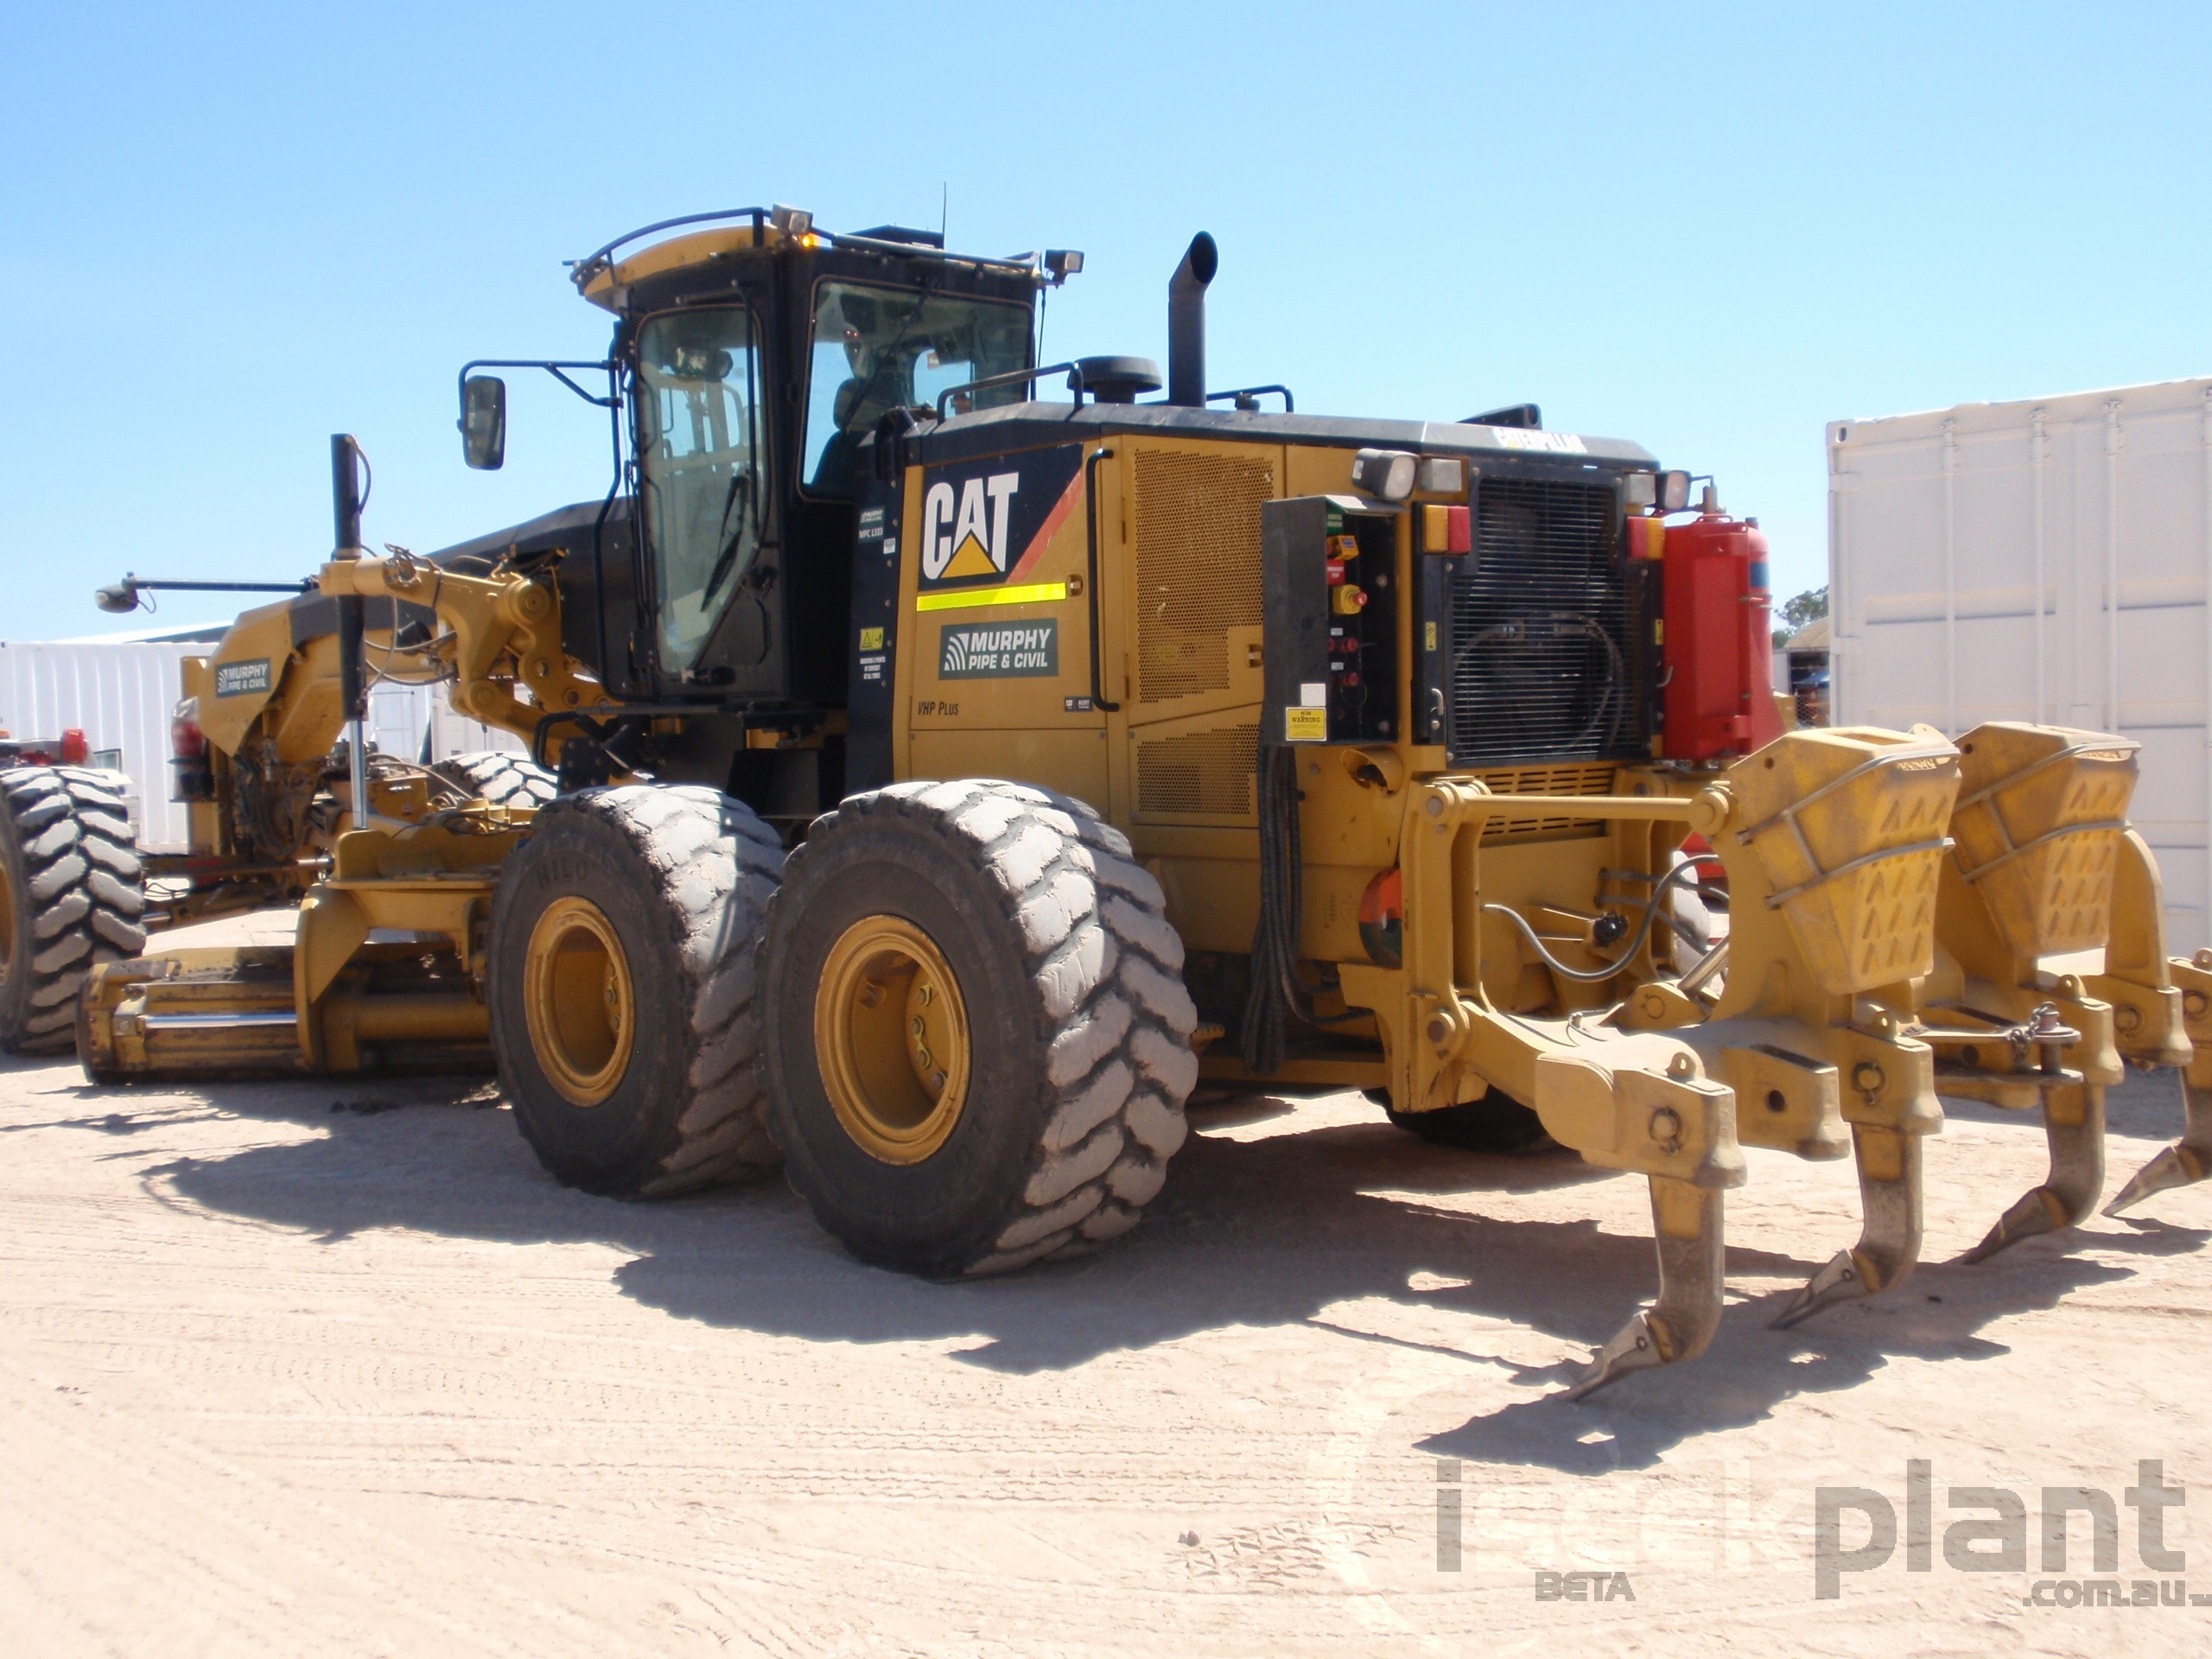 16ft Blade Grader Grader for hire - Matilda Equipment